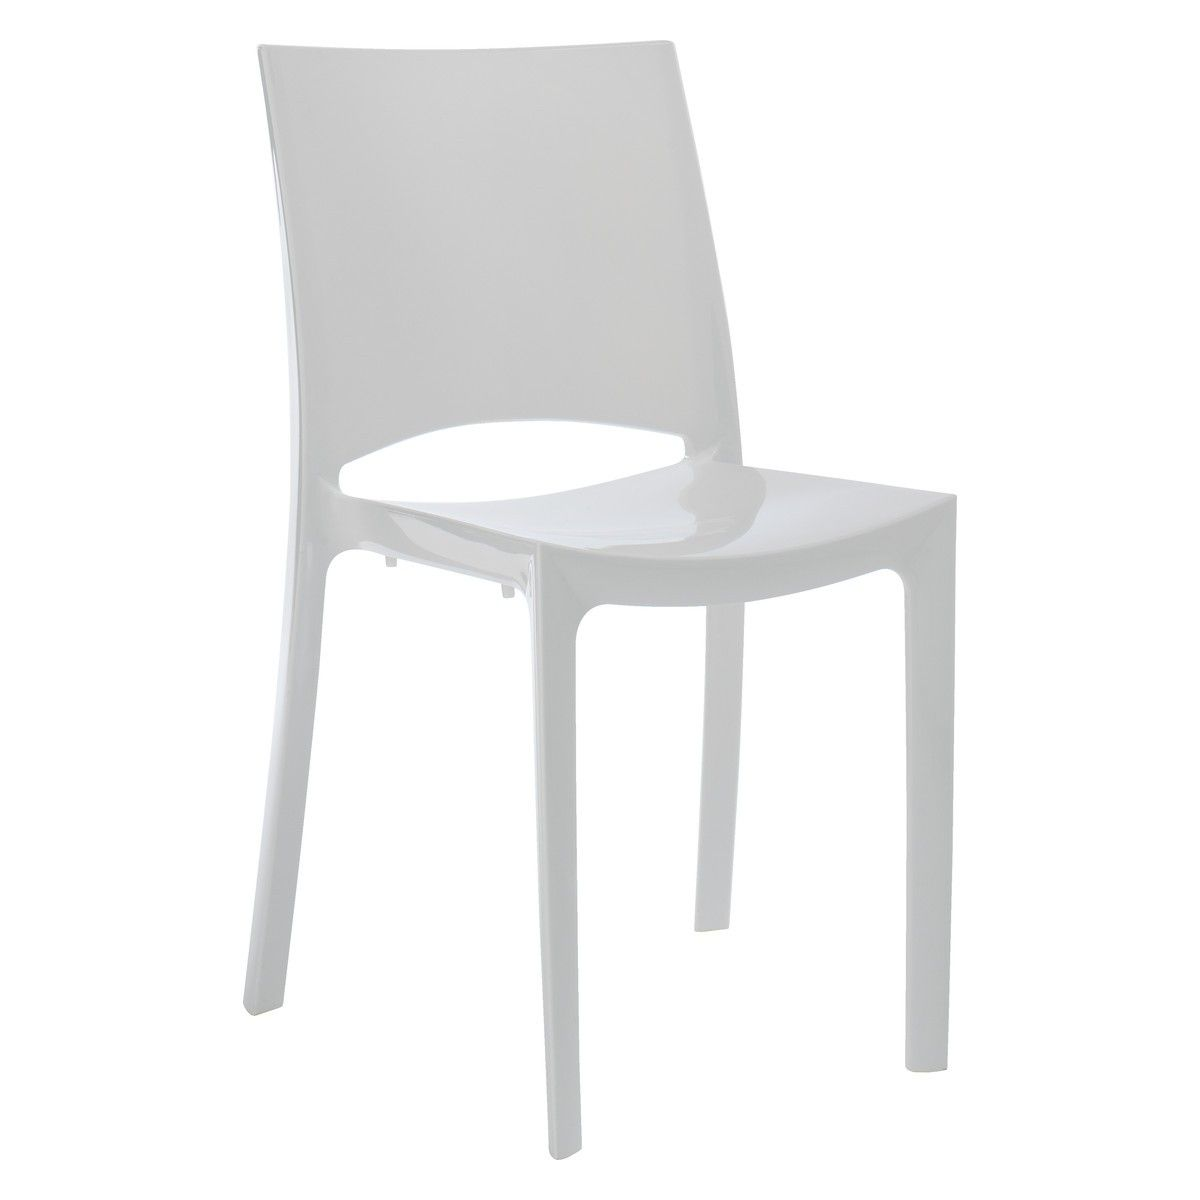 VERNE White Plastic Stackable Dining Chair | Buy Now At Habitat UK